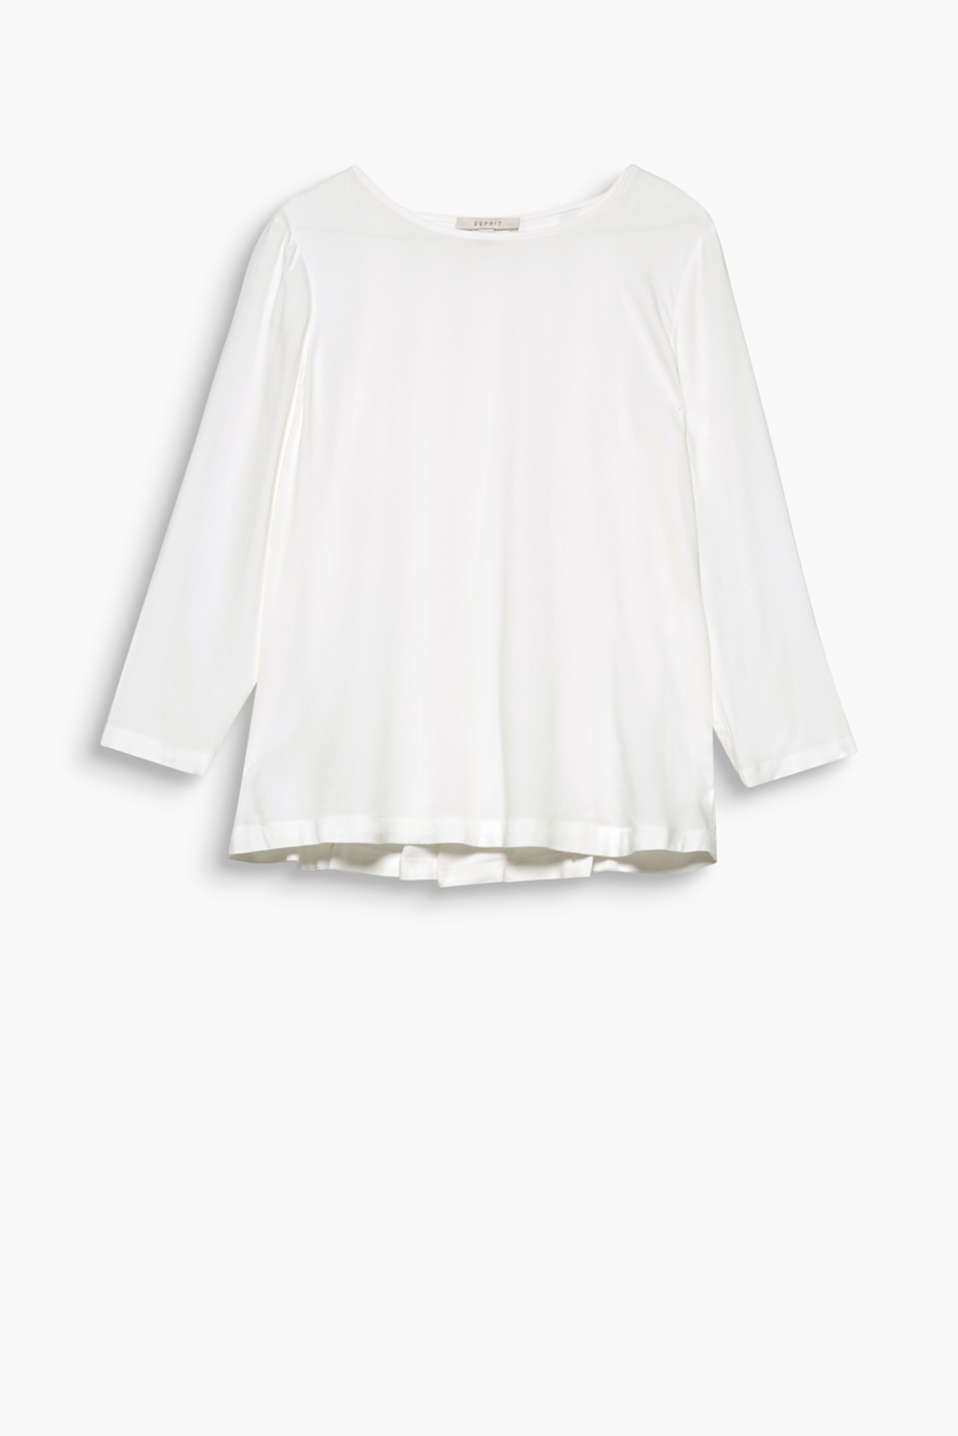 Update your wardrobe basics with this pure viscose blouse featuring fine, inverted pleats.